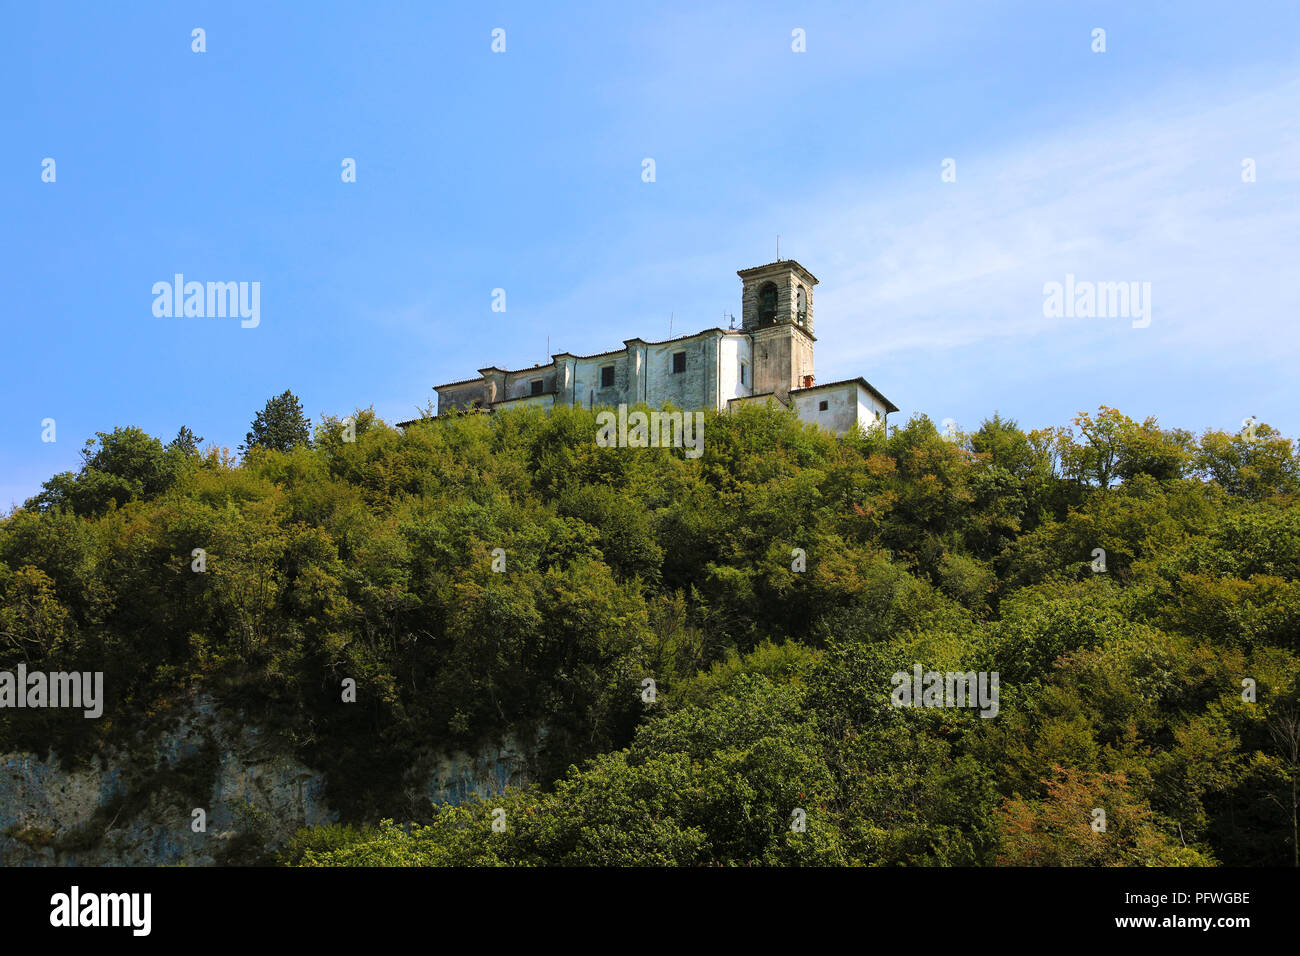 Beautiful view of the Sanctuary Madonna della Ceriola on the top of the Monte Isola Island, Lombardy, Italy - Stock Image